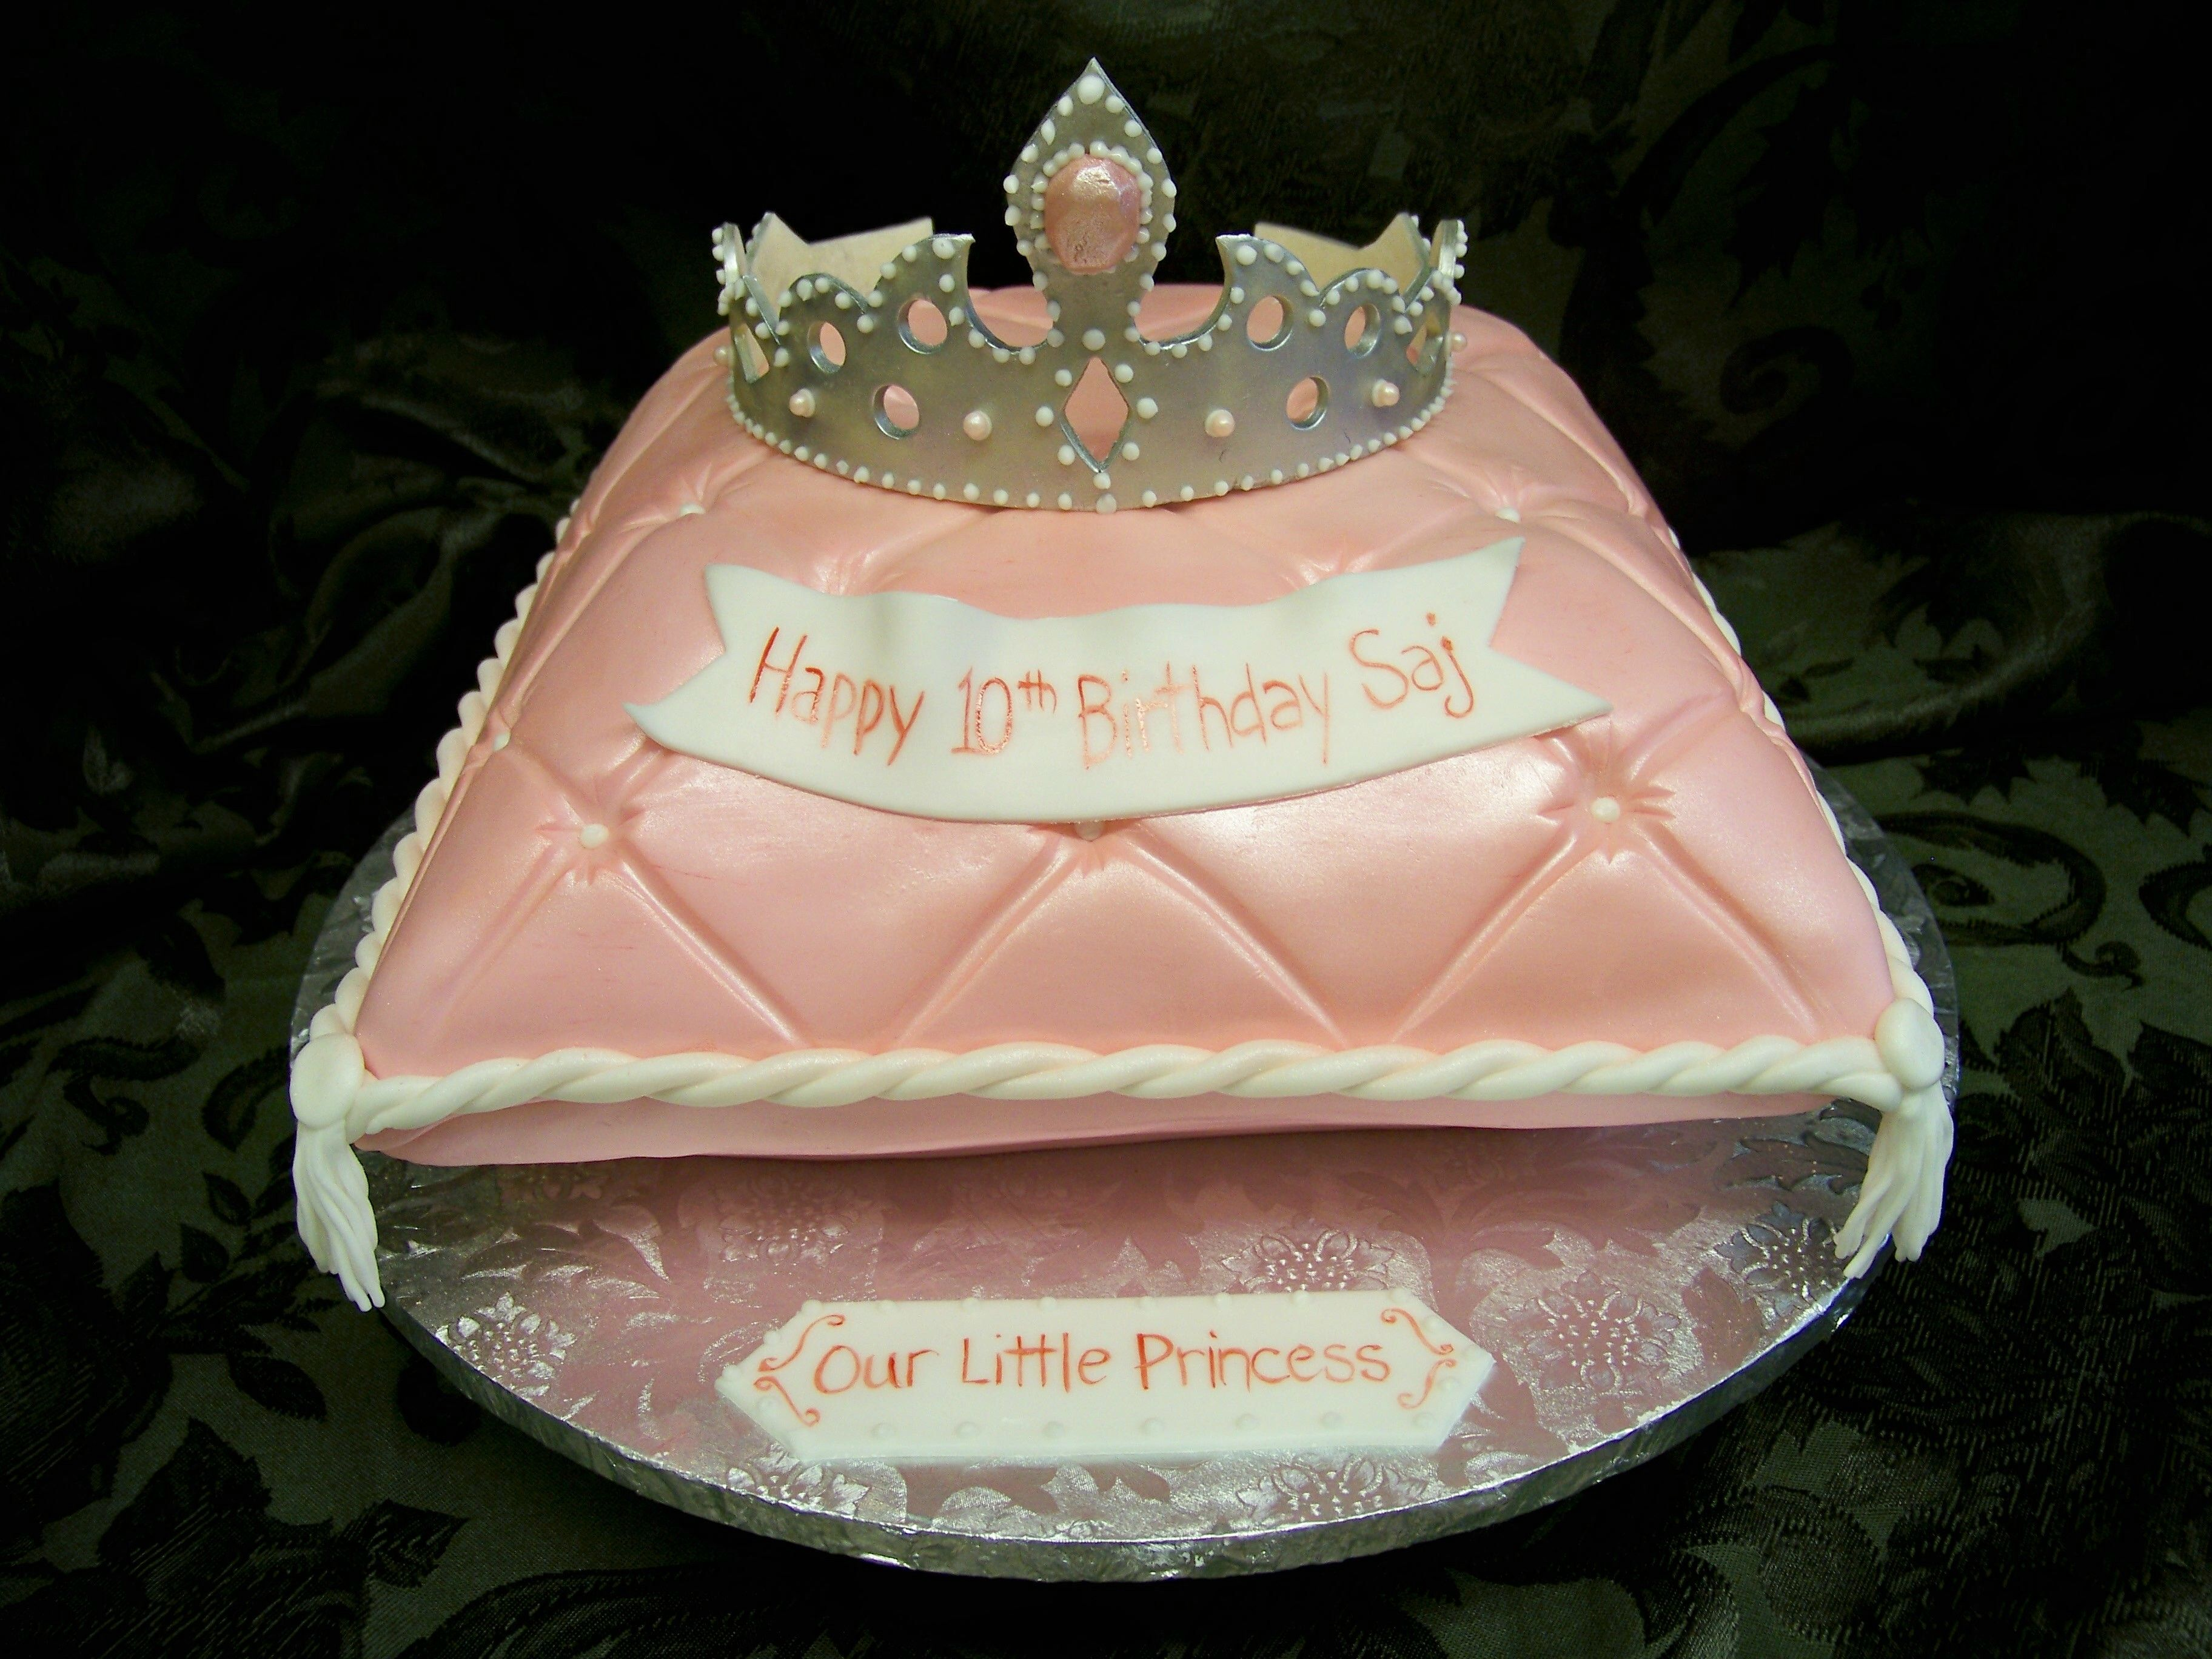 Princess Pillow Cake Images : Princess pillow cake cake ideas Pinterest